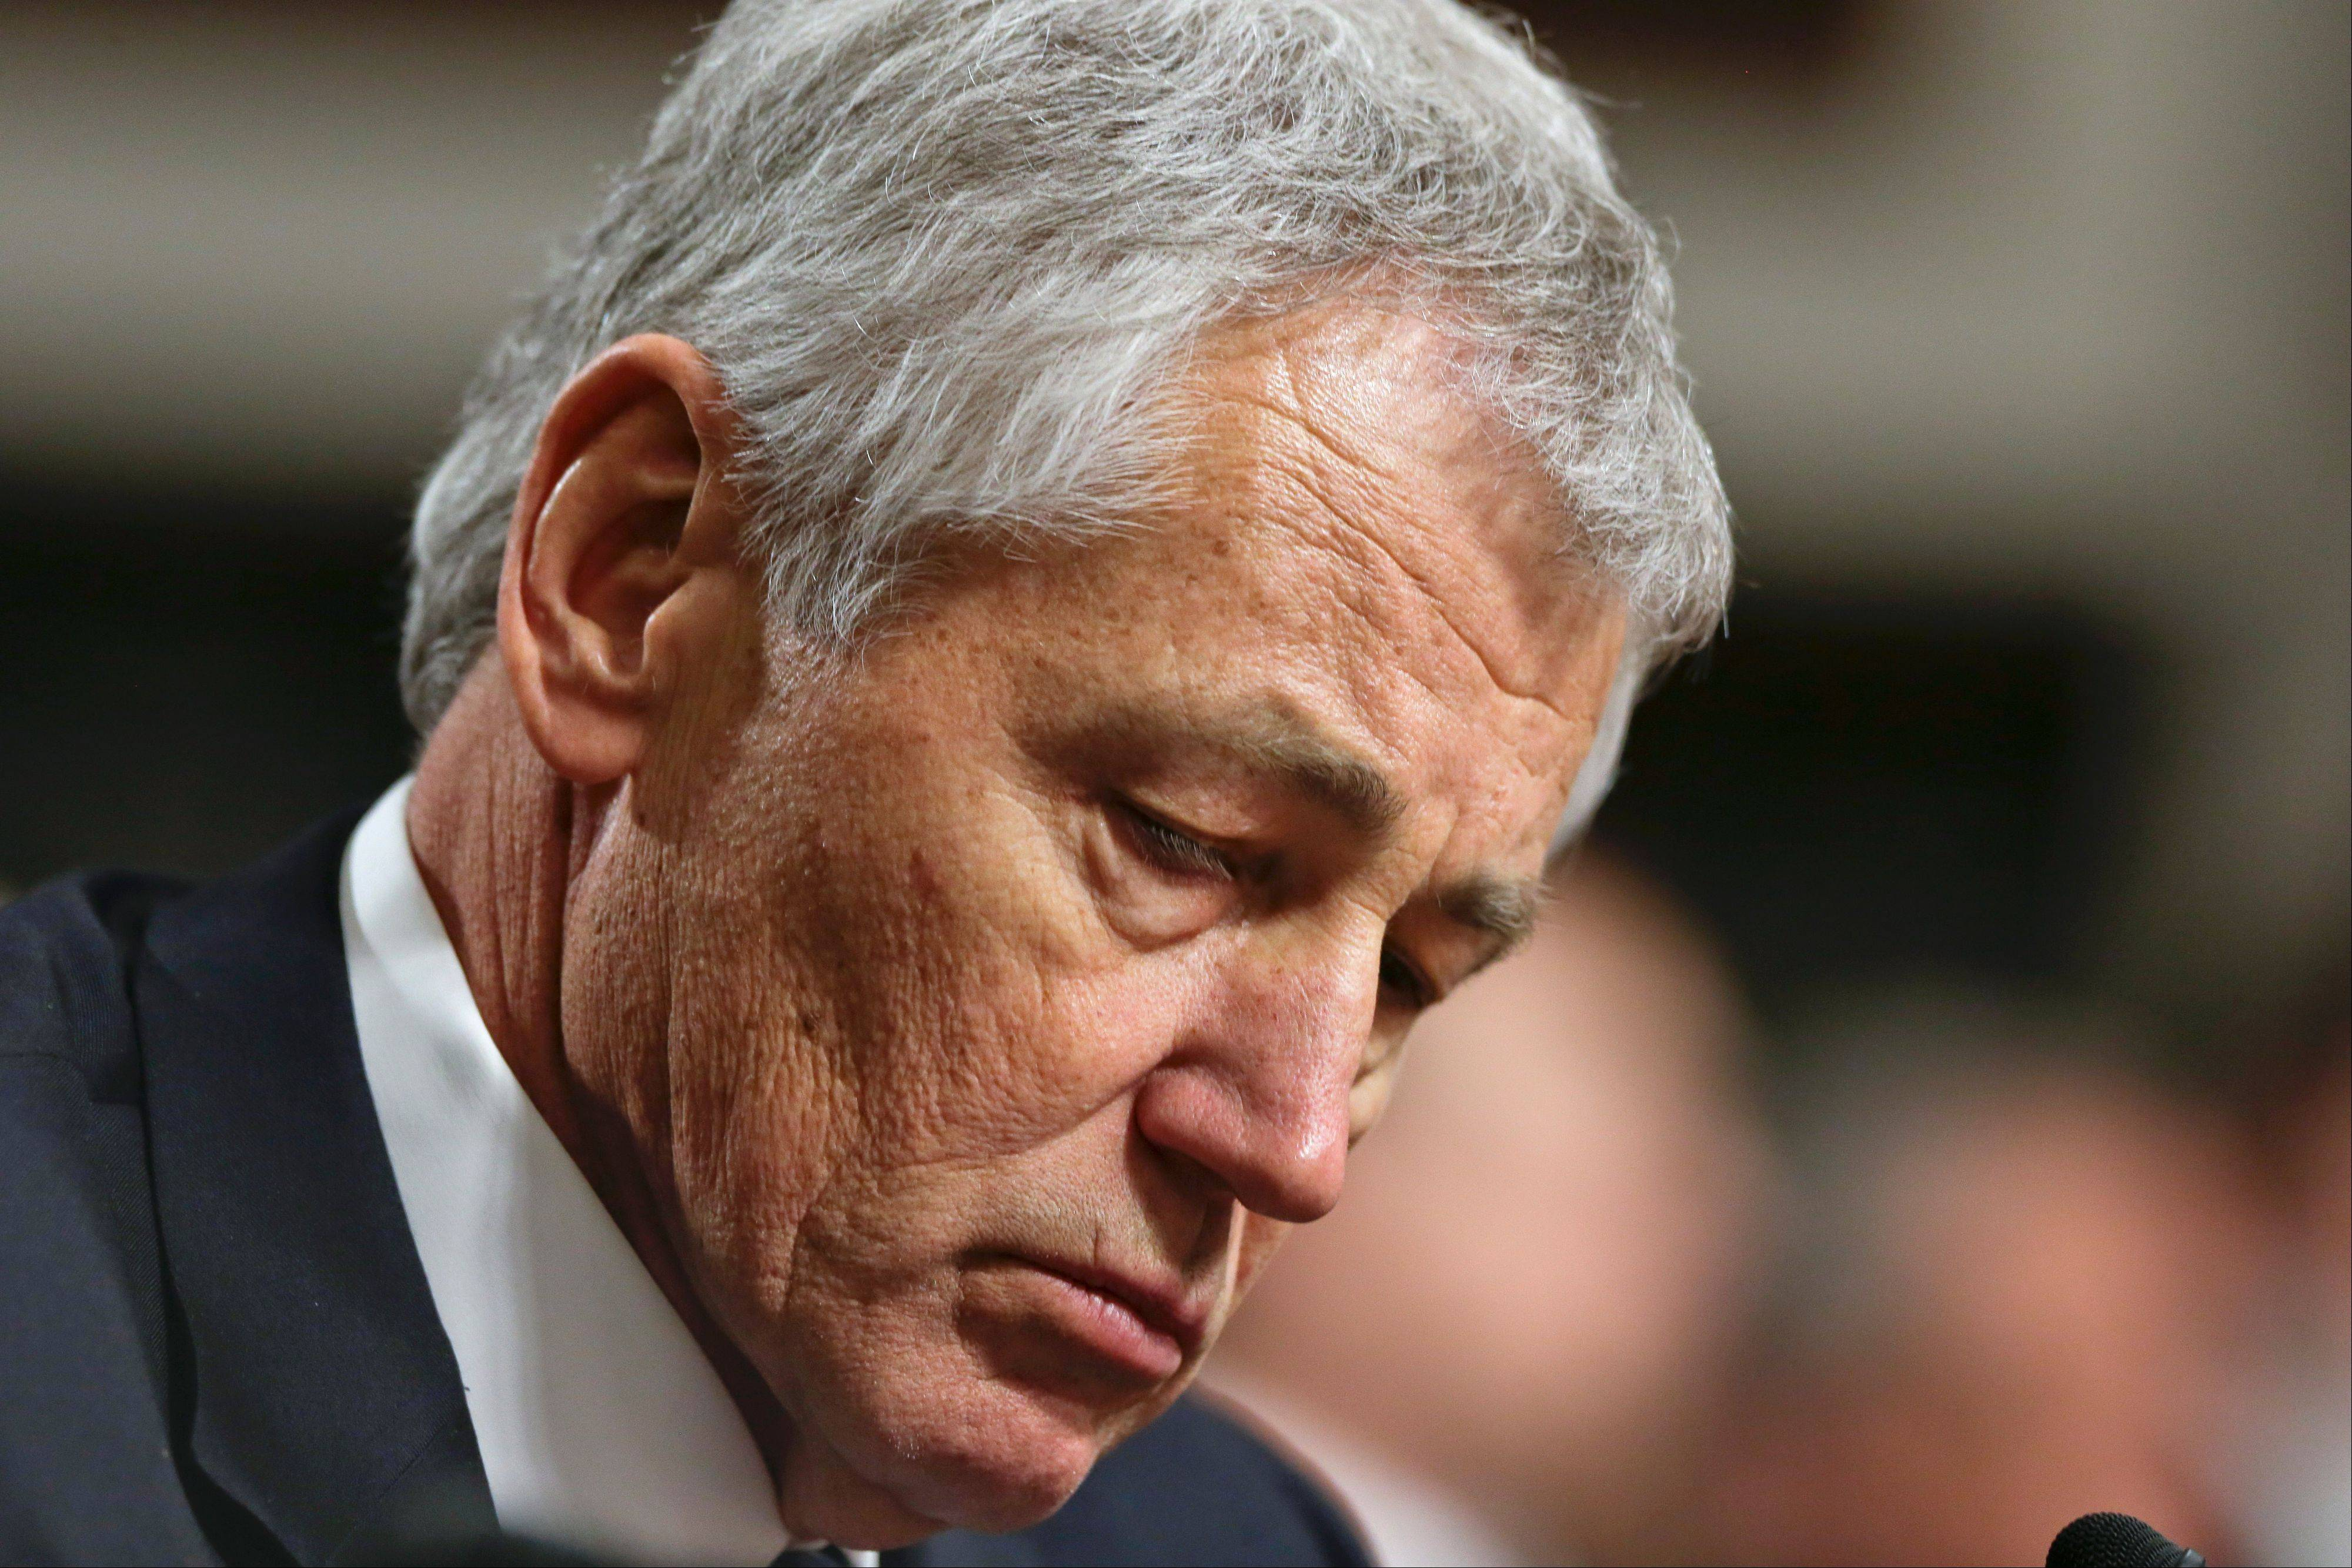 Republican Chuck Hagel, a former two-term GOP senator from Nebraska and President Obama's choice for Defense Secretary, testifies before the Senate Armed Services Committee during his confirmation hearing on Capitol Hill in Washington.